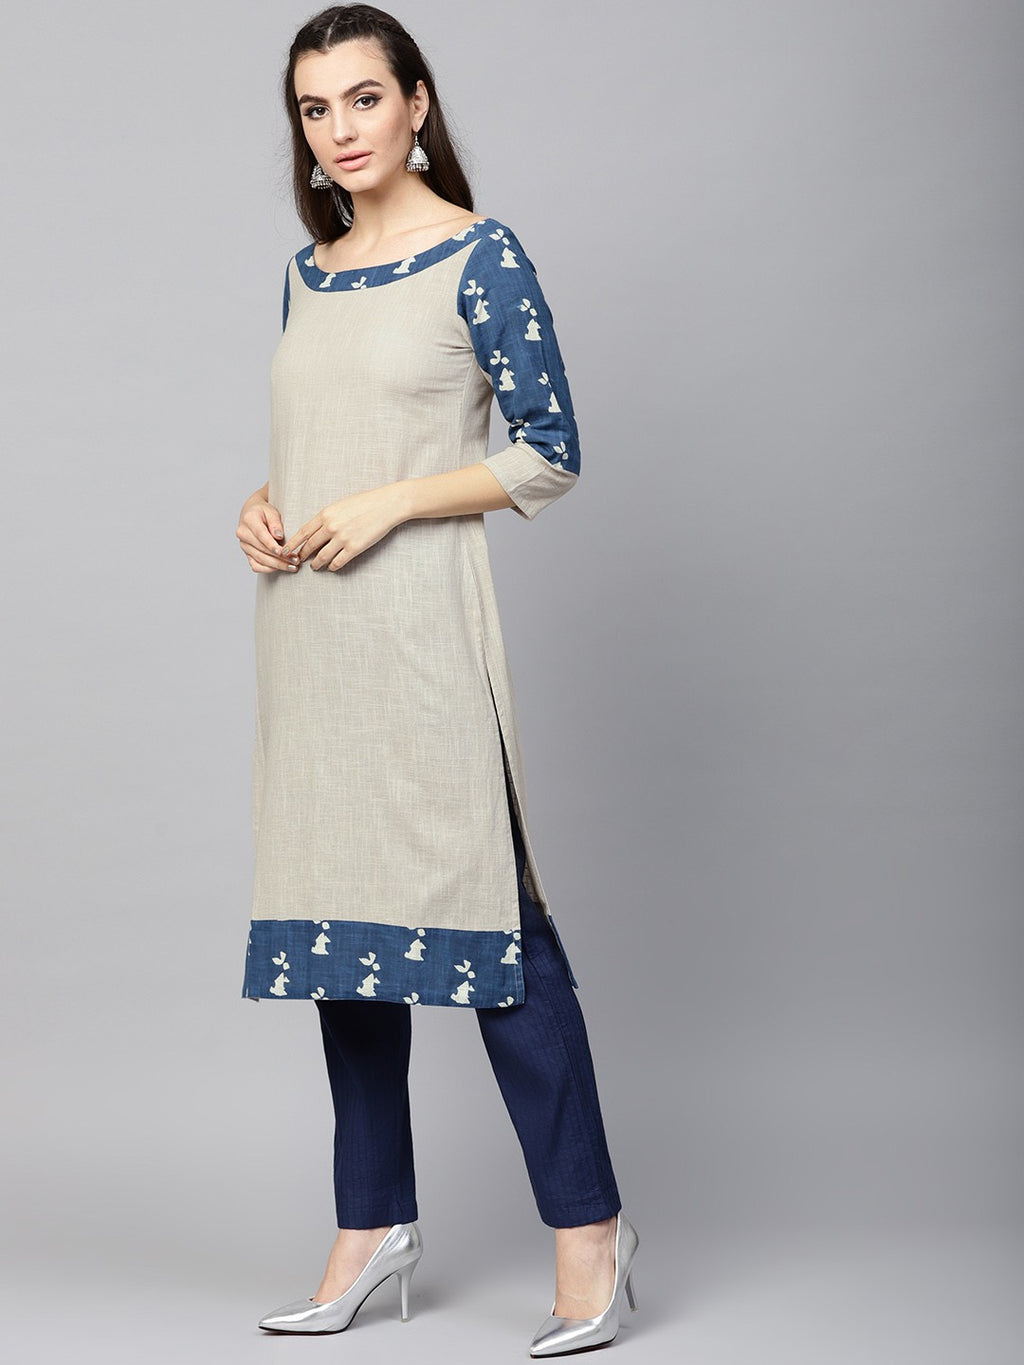 Beige & Blue Dabu Printed Straight Kurta (Fully Stitched) | Znx4ever.com